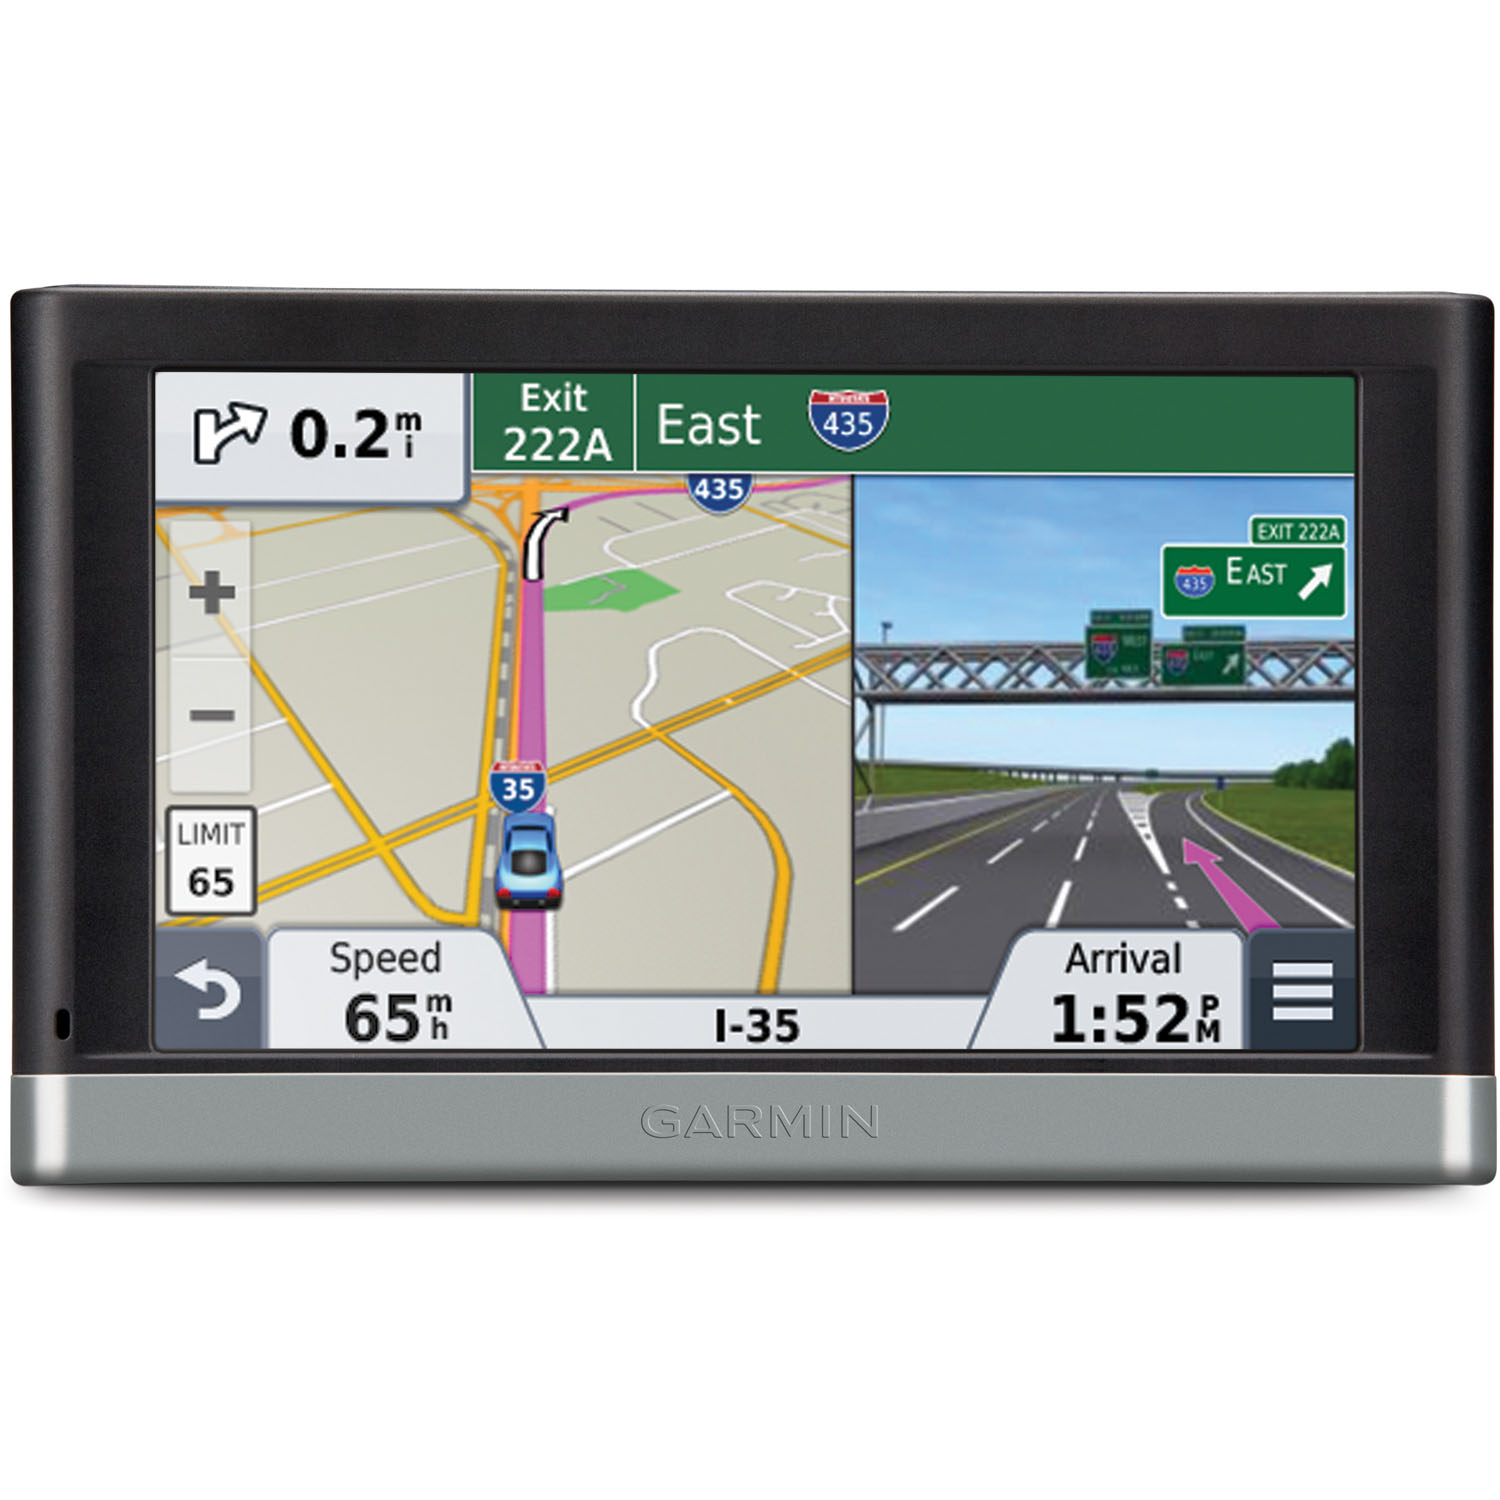 Garmin  5.0 In. GPS with Lifetime Maps